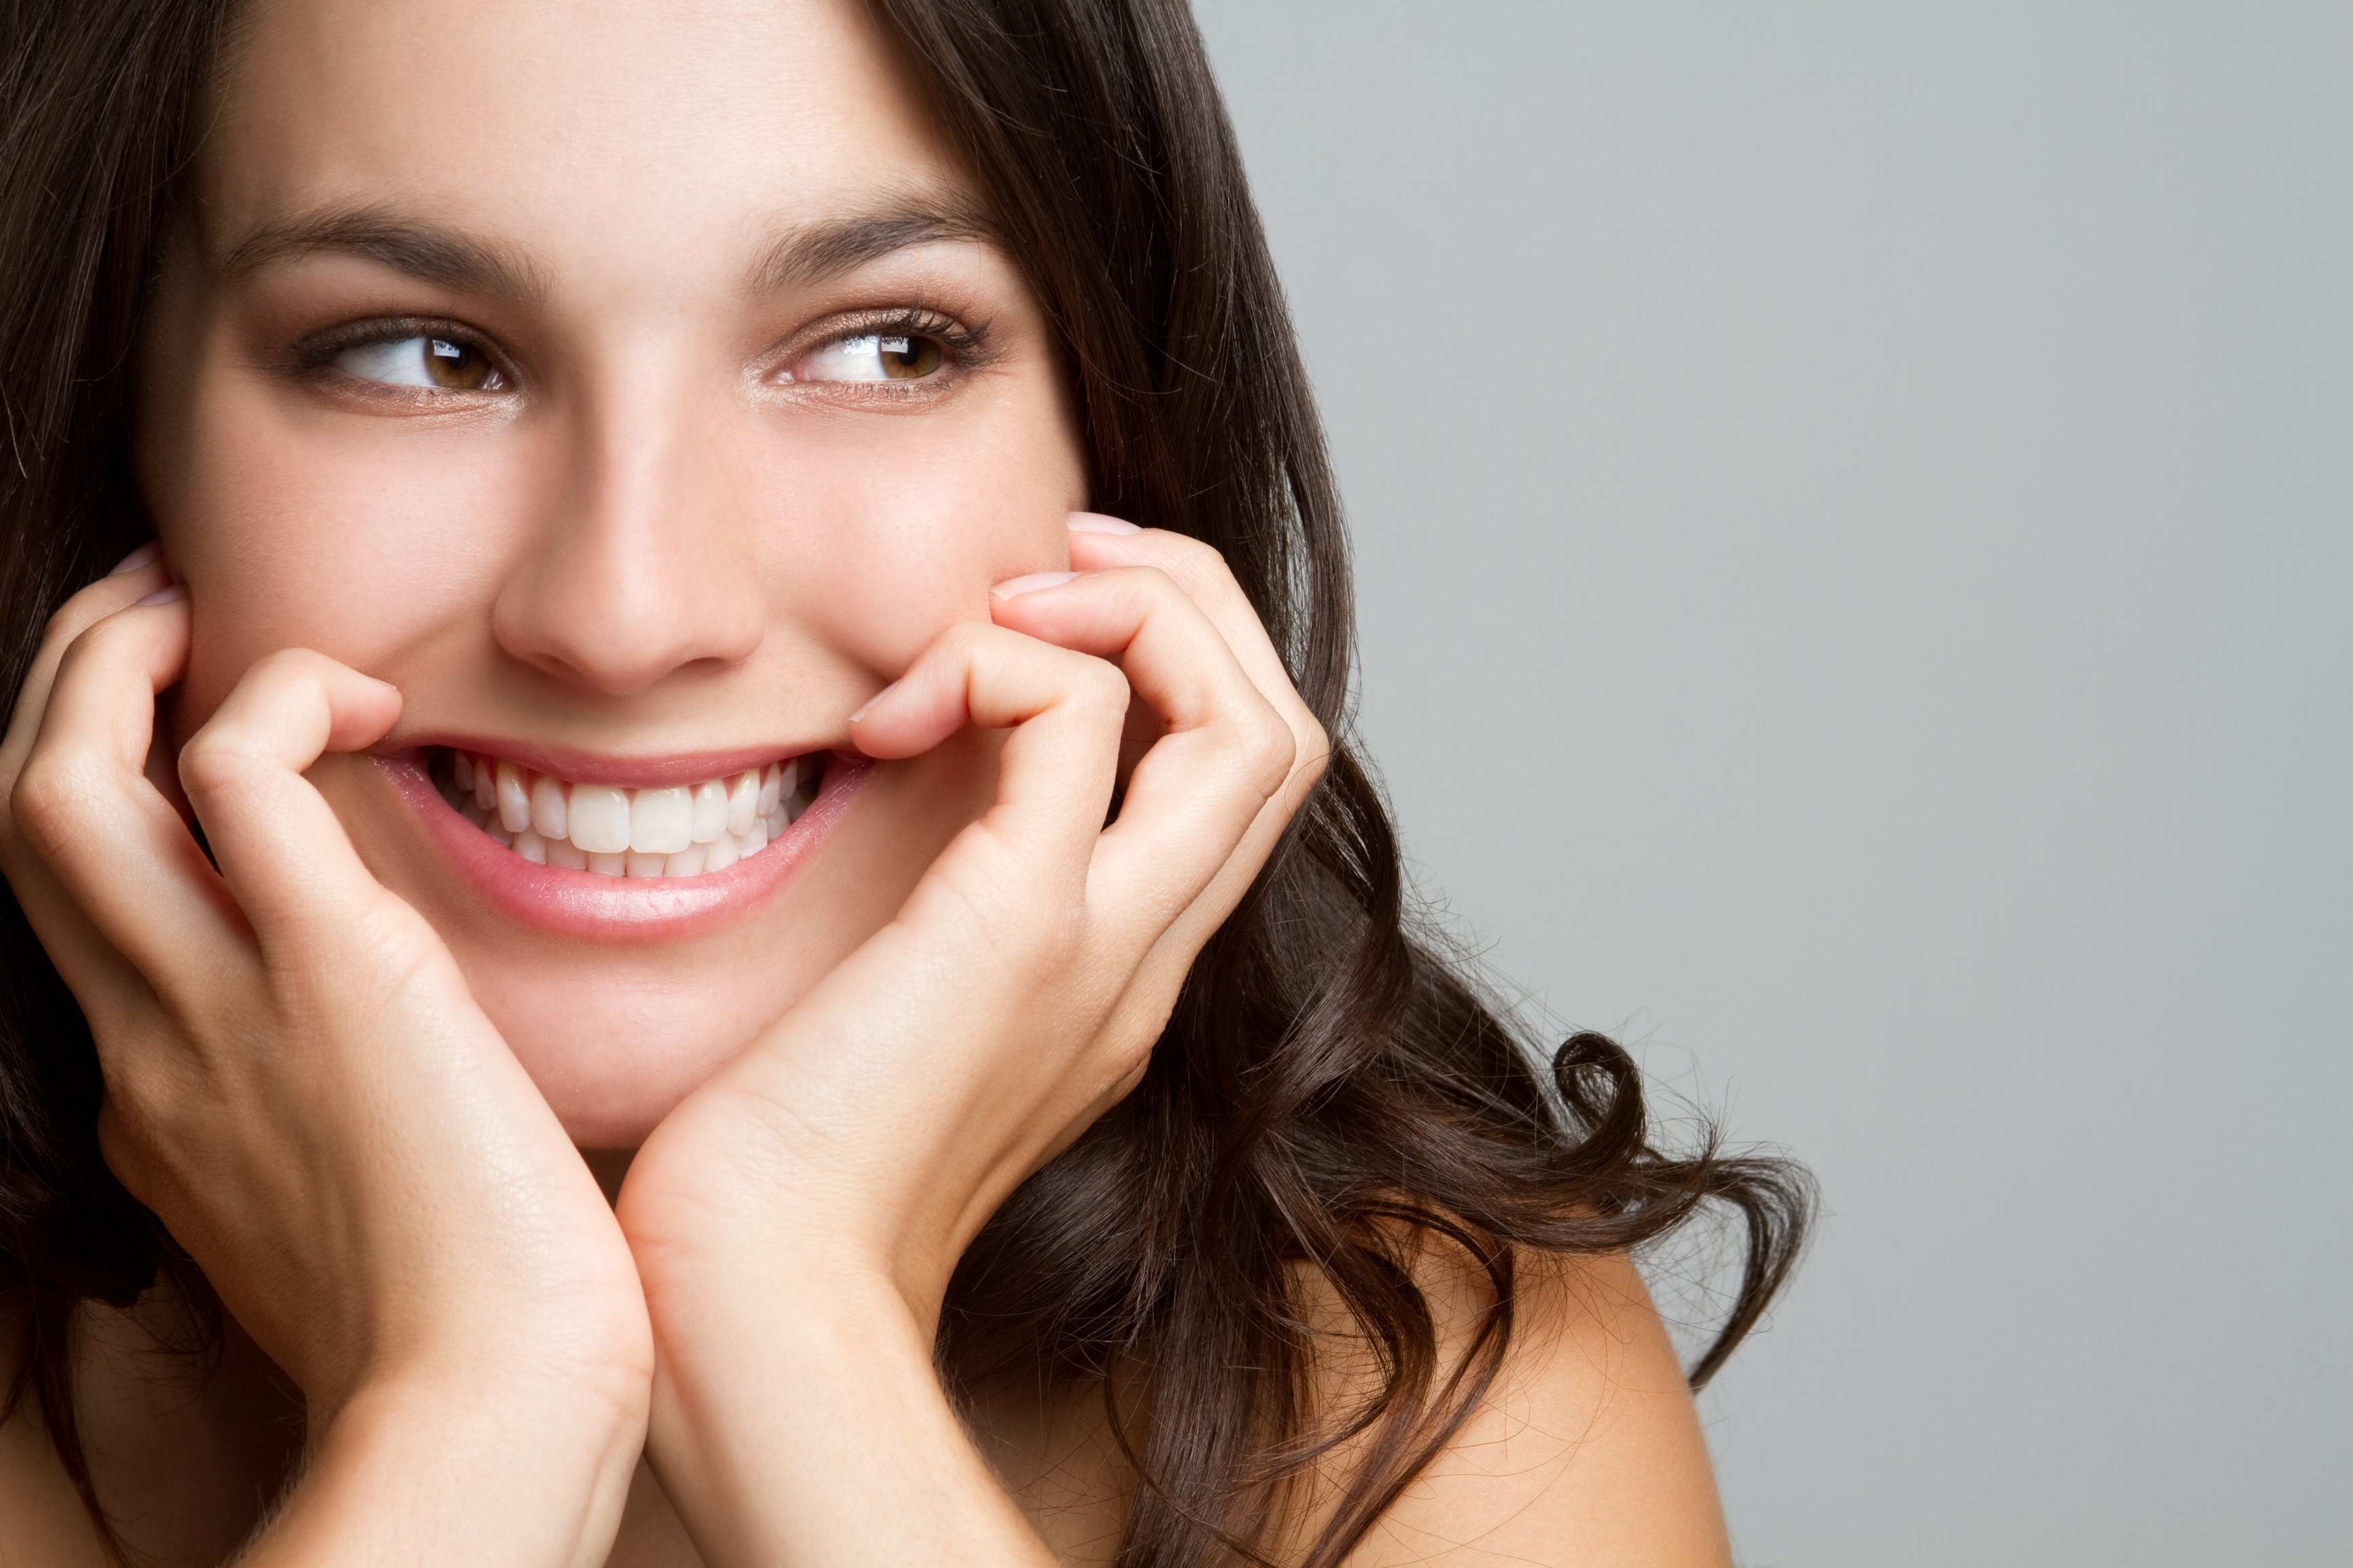 Classification of Smiles - Cosmetic Dentistry